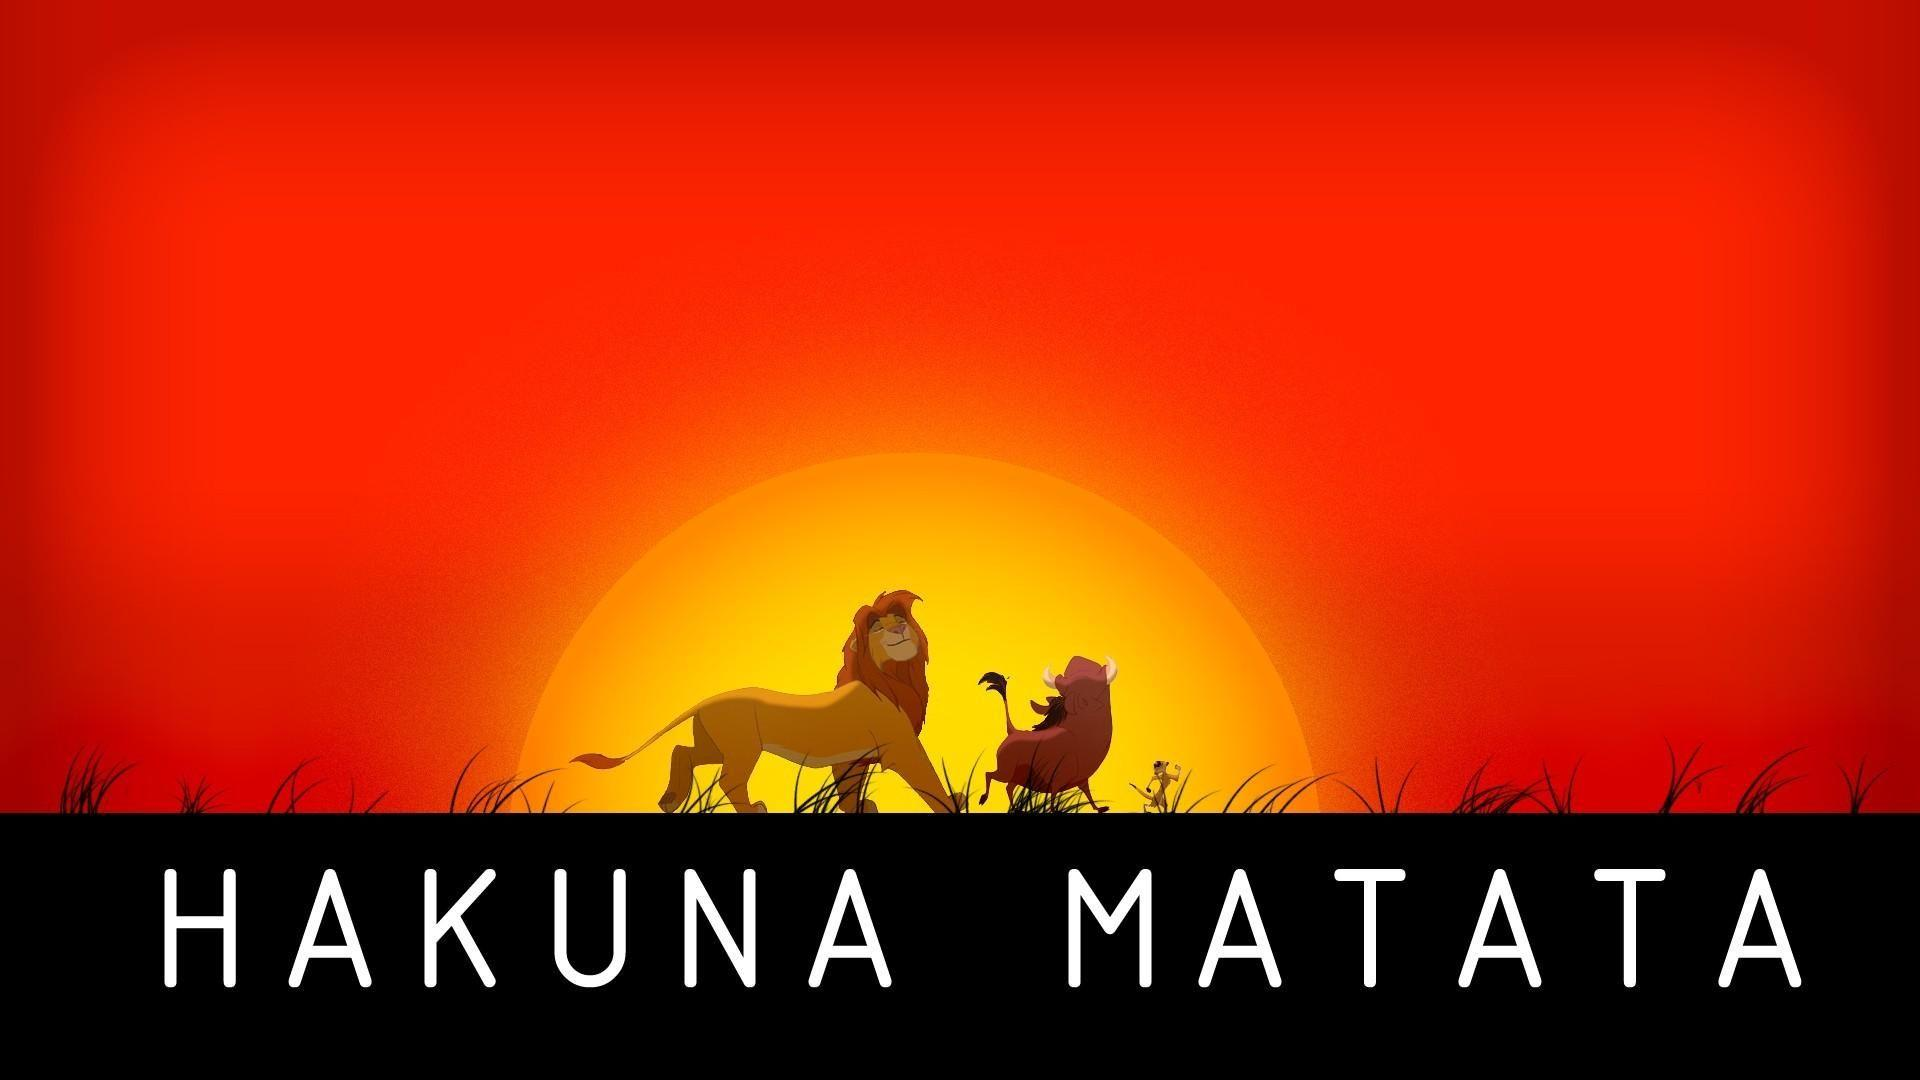 Hakuna matata the lion king no worries wallpapers